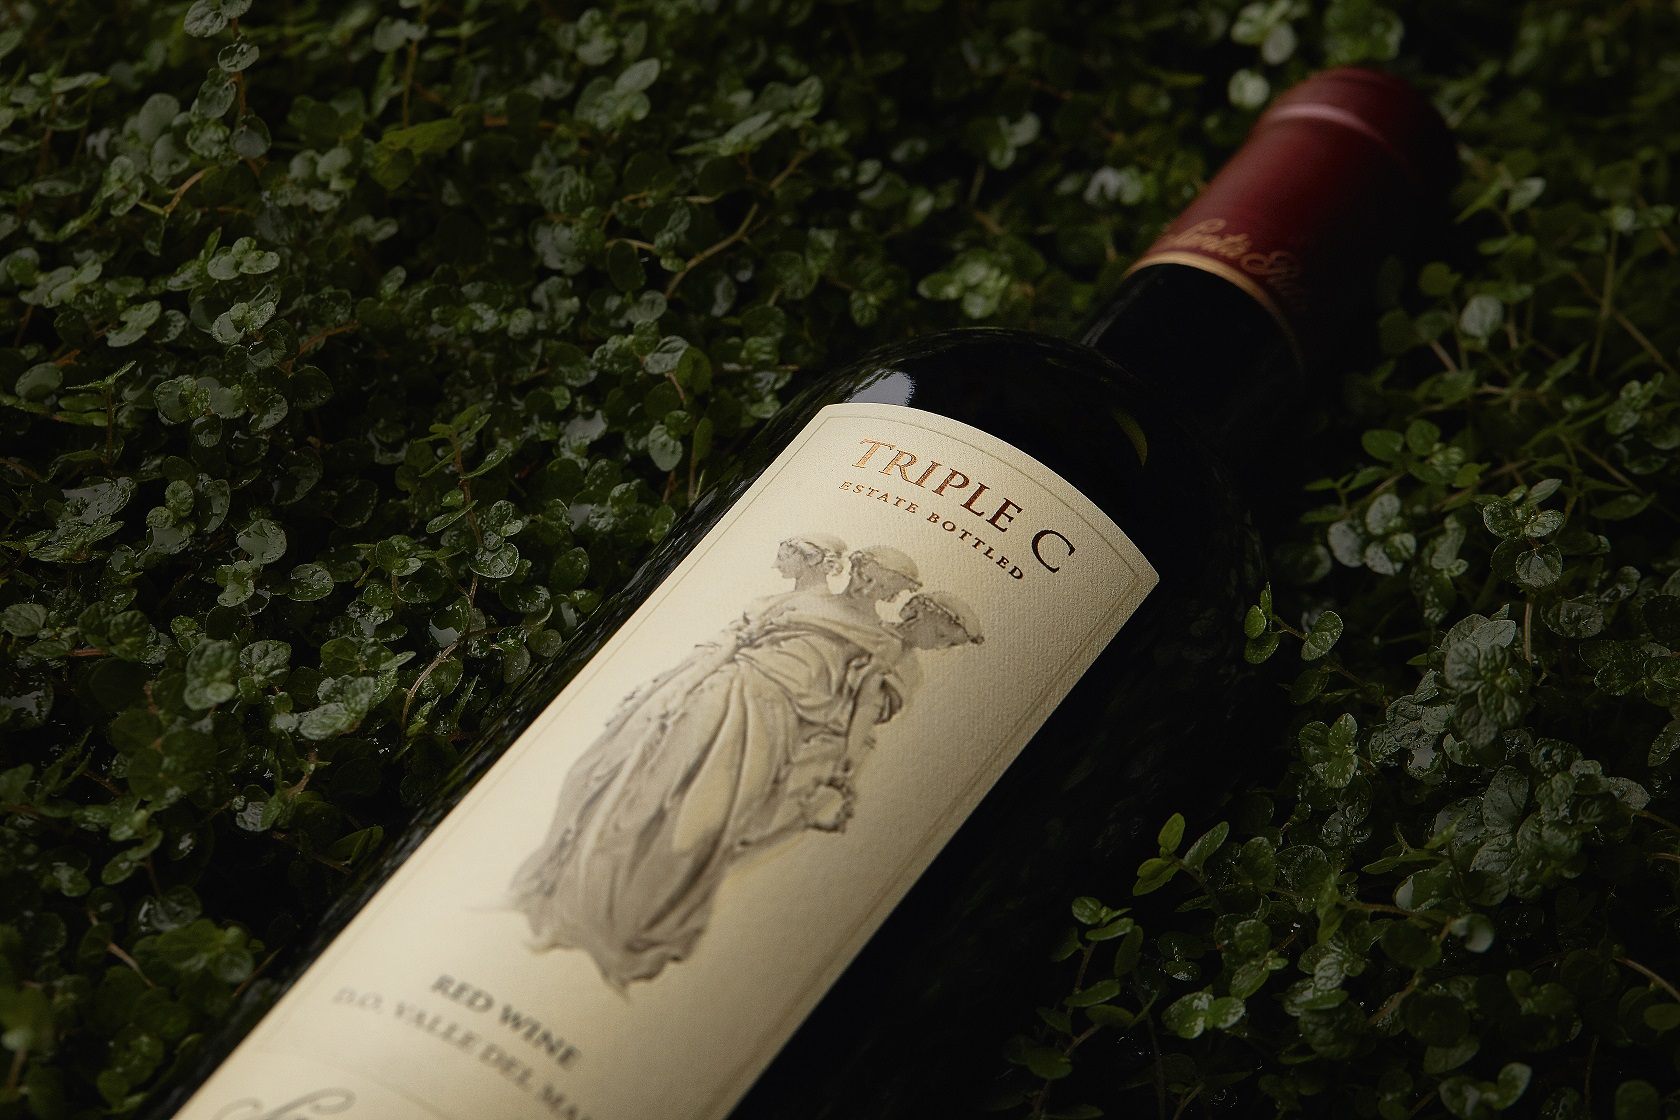 Triple C fue premiado en Wine Enthusiast.